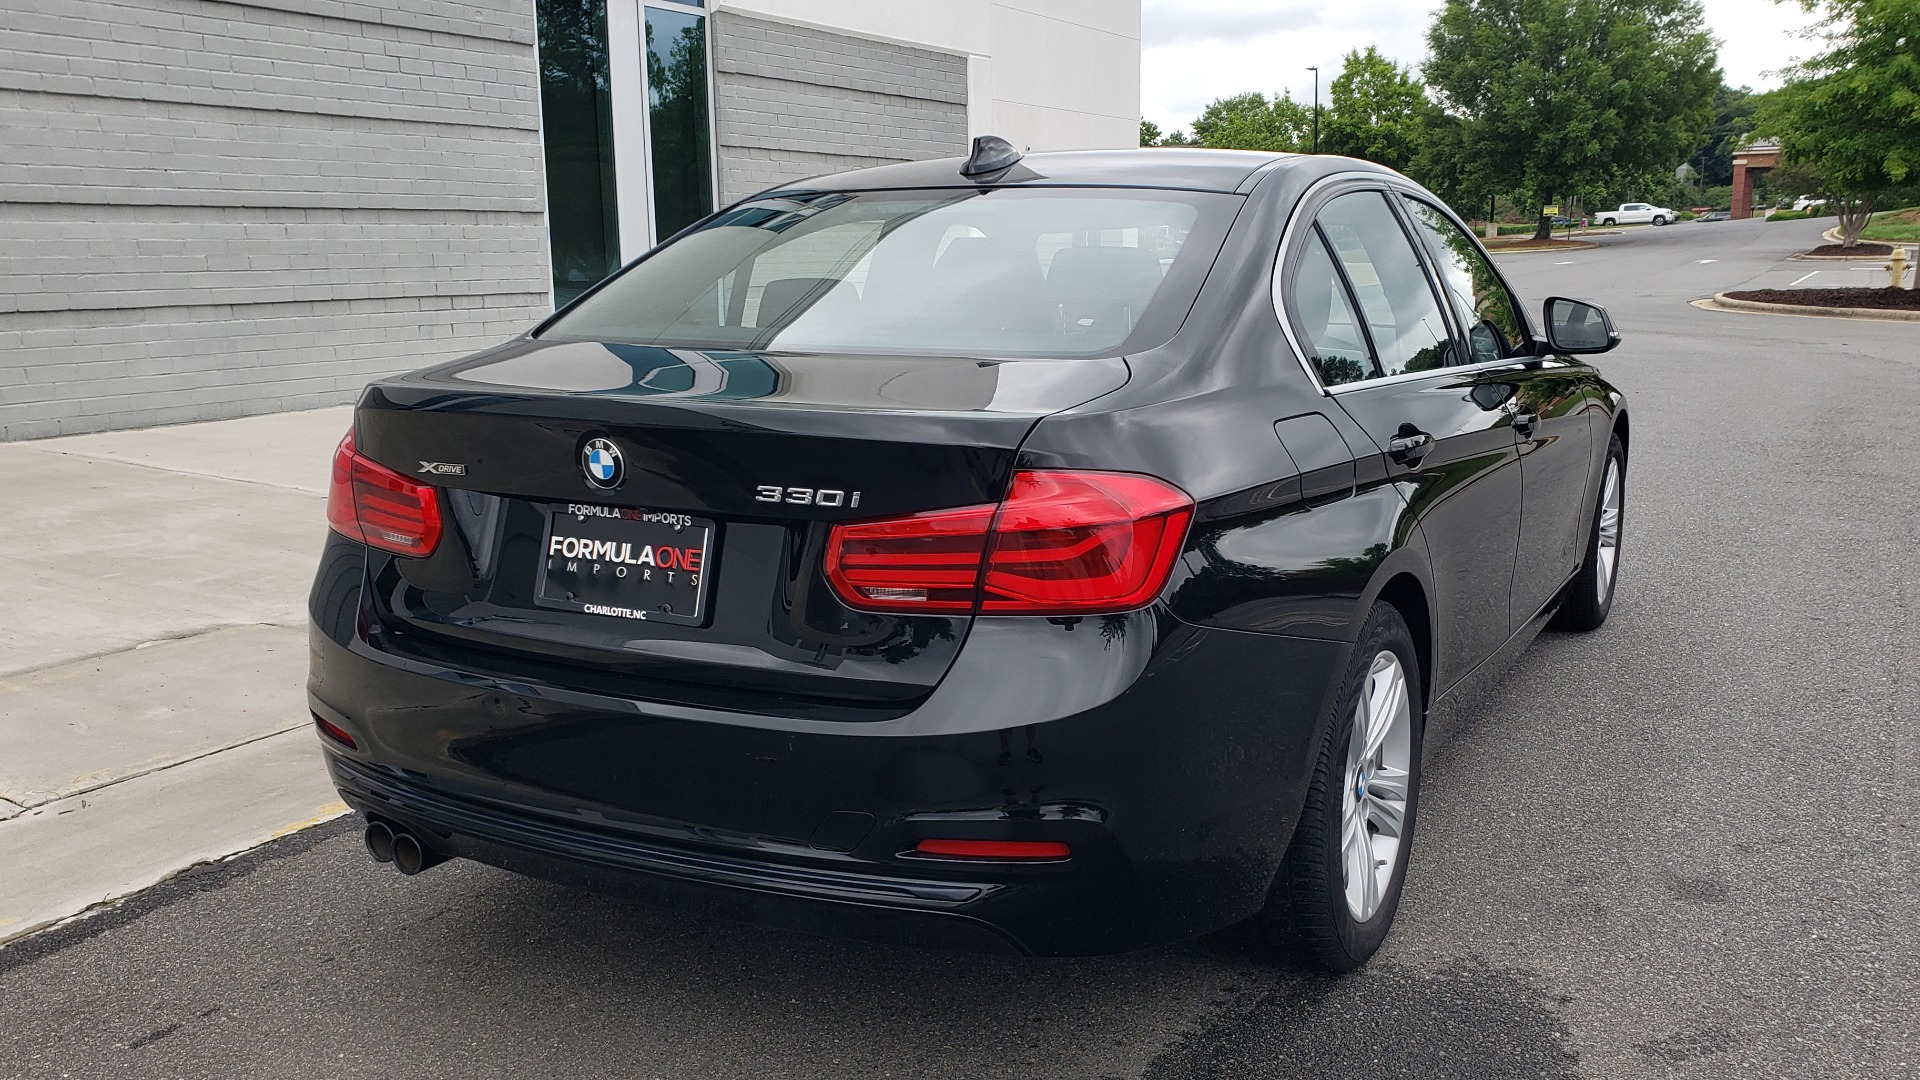 Used 2018 BMW 3 SERIES 330IXDRIVE / CONV PKG / NAV / SUNROOF / HTD STS / REARVIEW for sale $26,552 at Formula Imports in Charlotte NC 28227 2